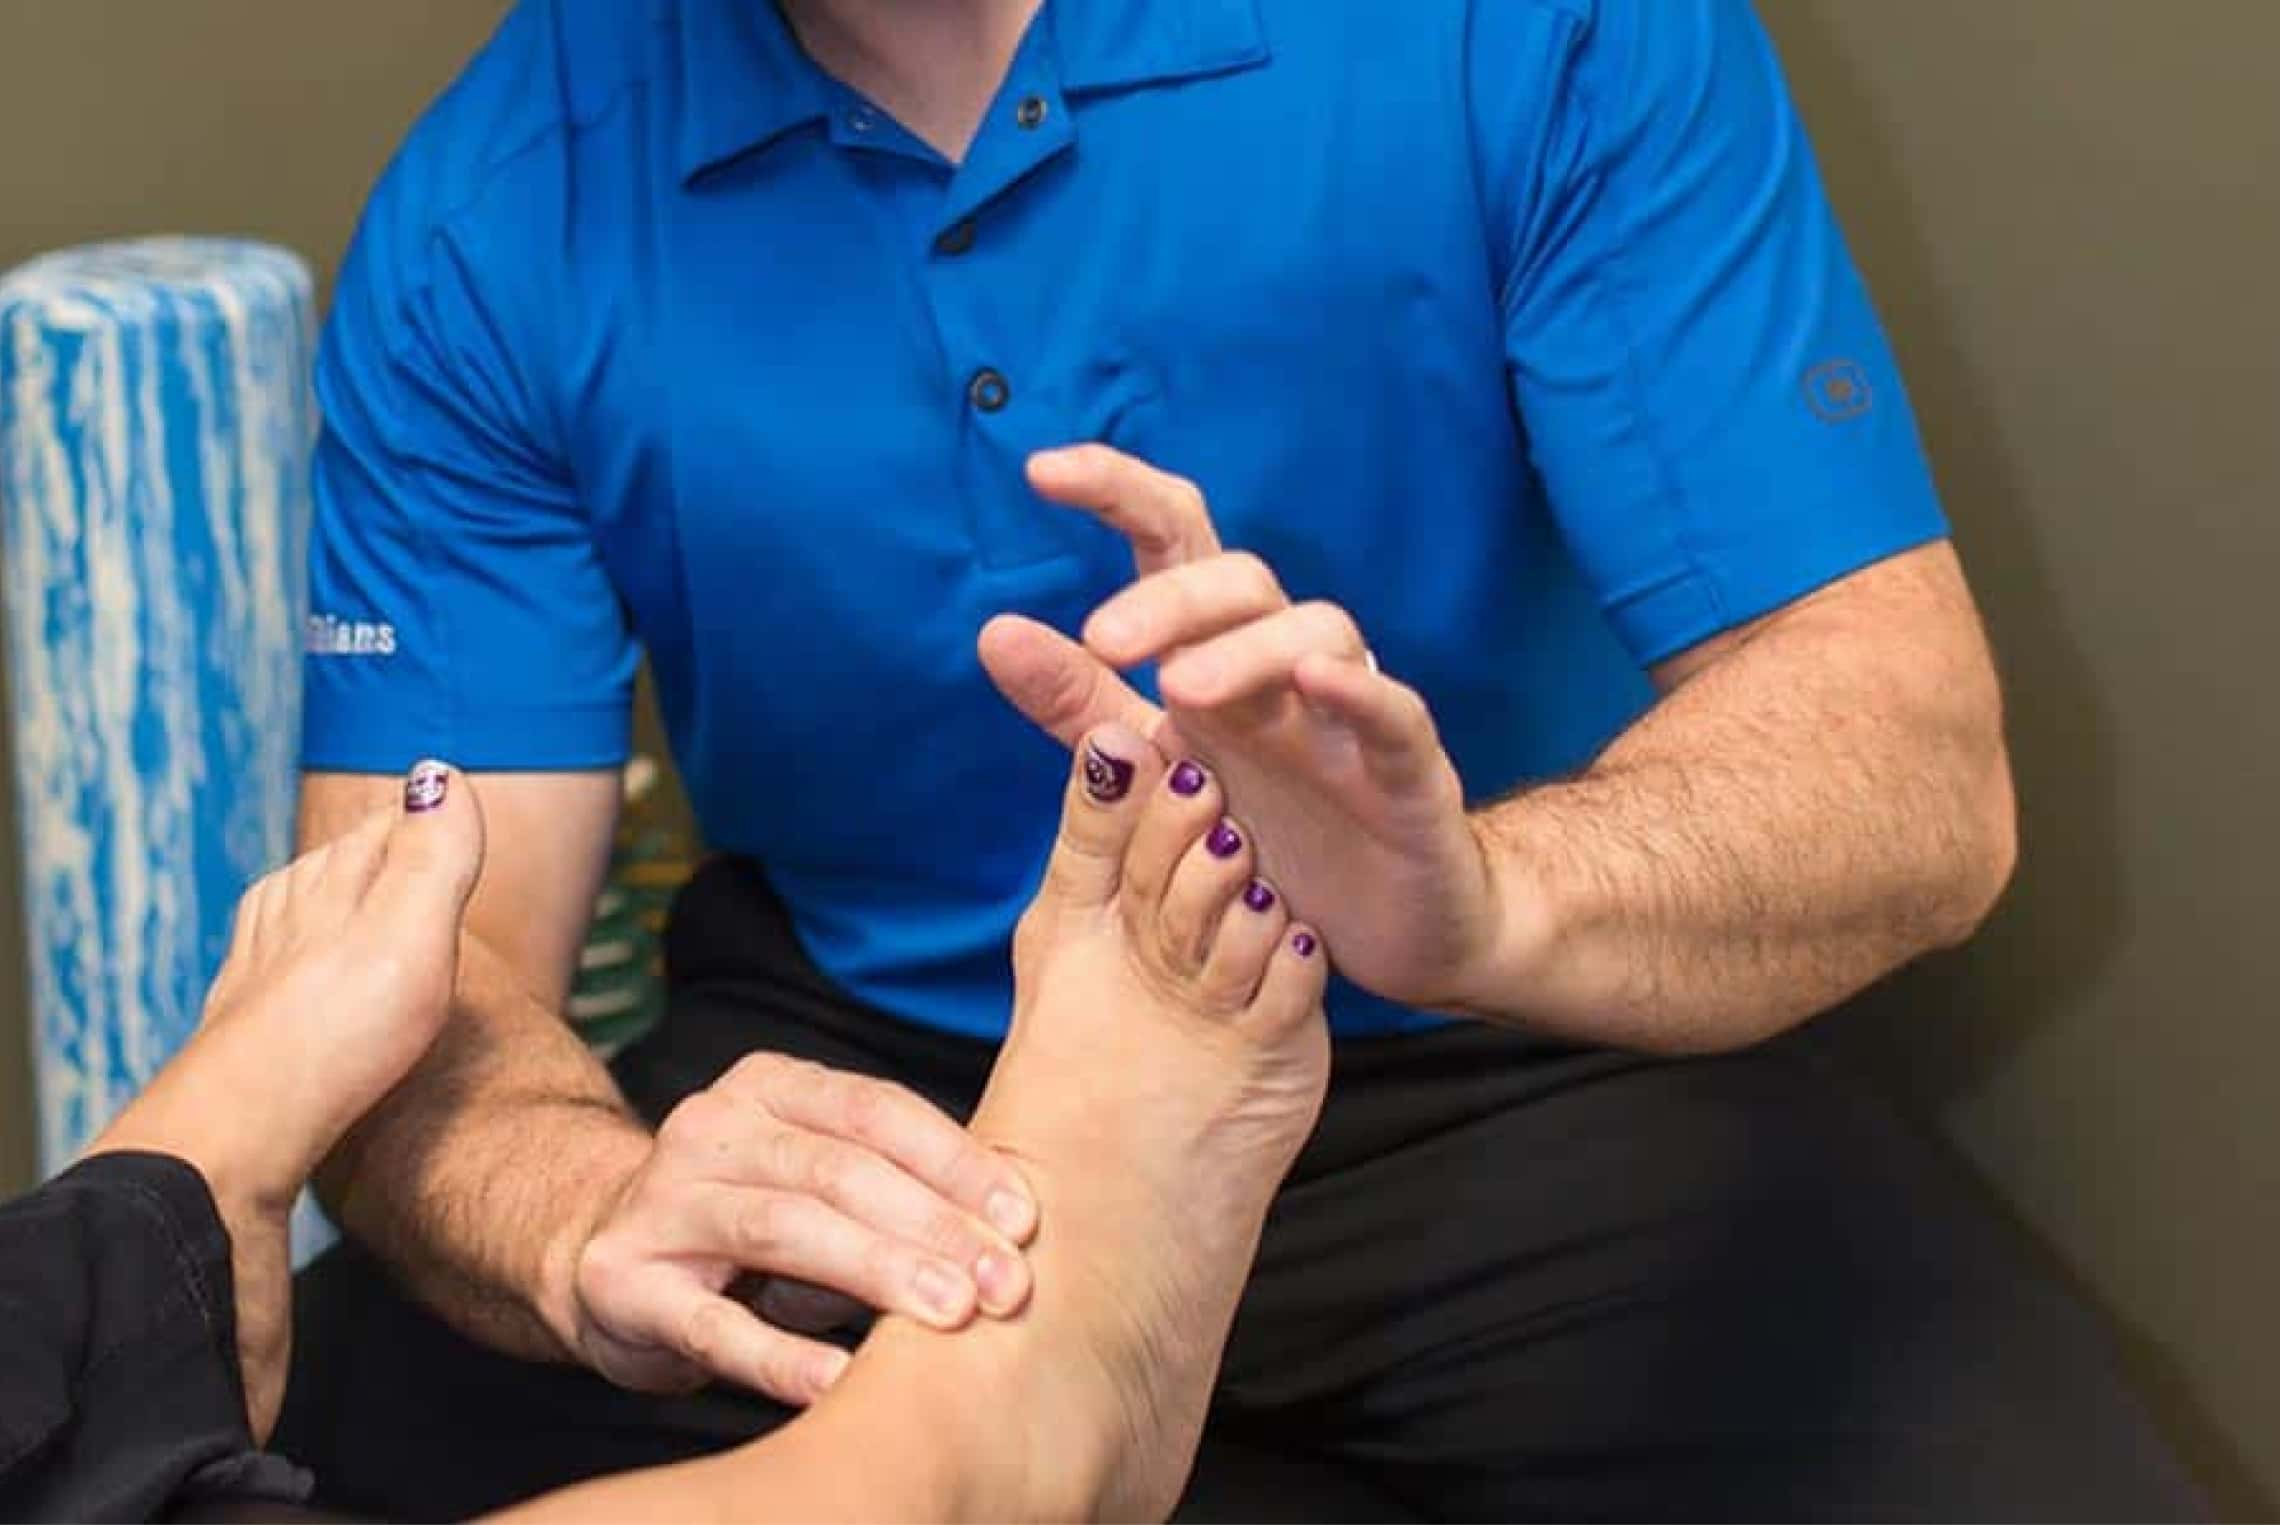 Chiropractor pushing against woman's toes while holding ankle